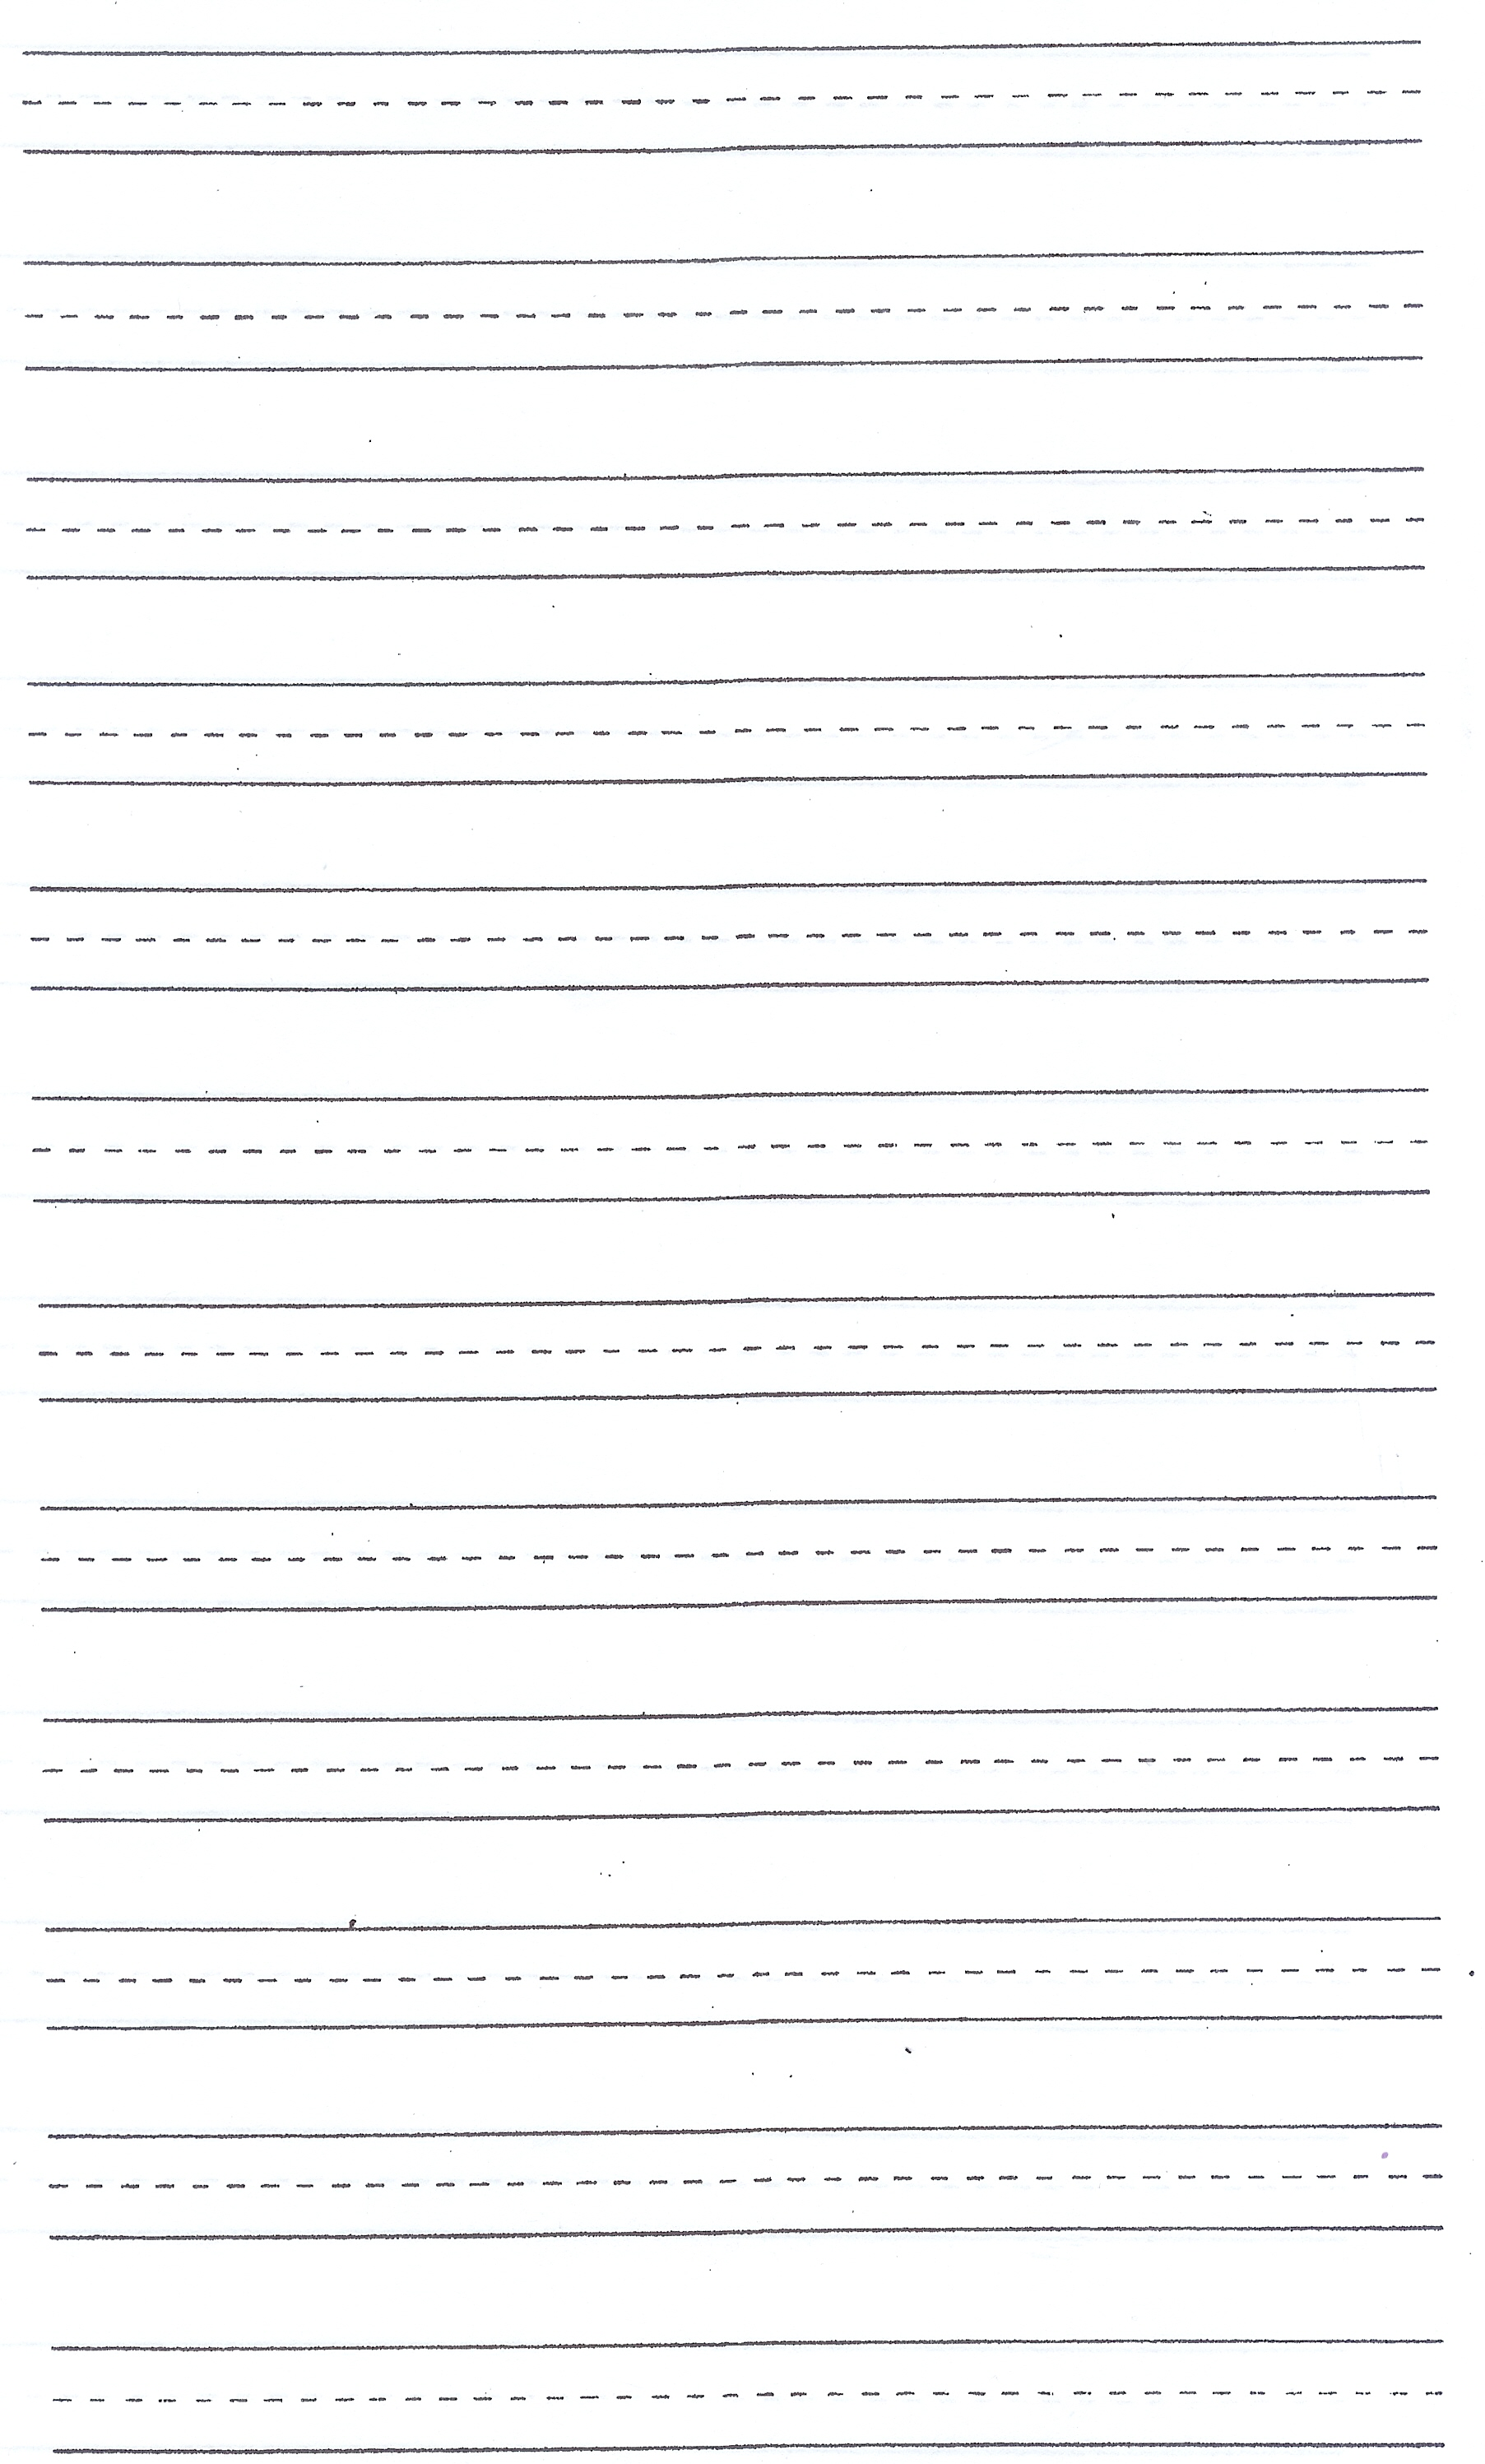 free writing page printable kindergarten lined paper template ...